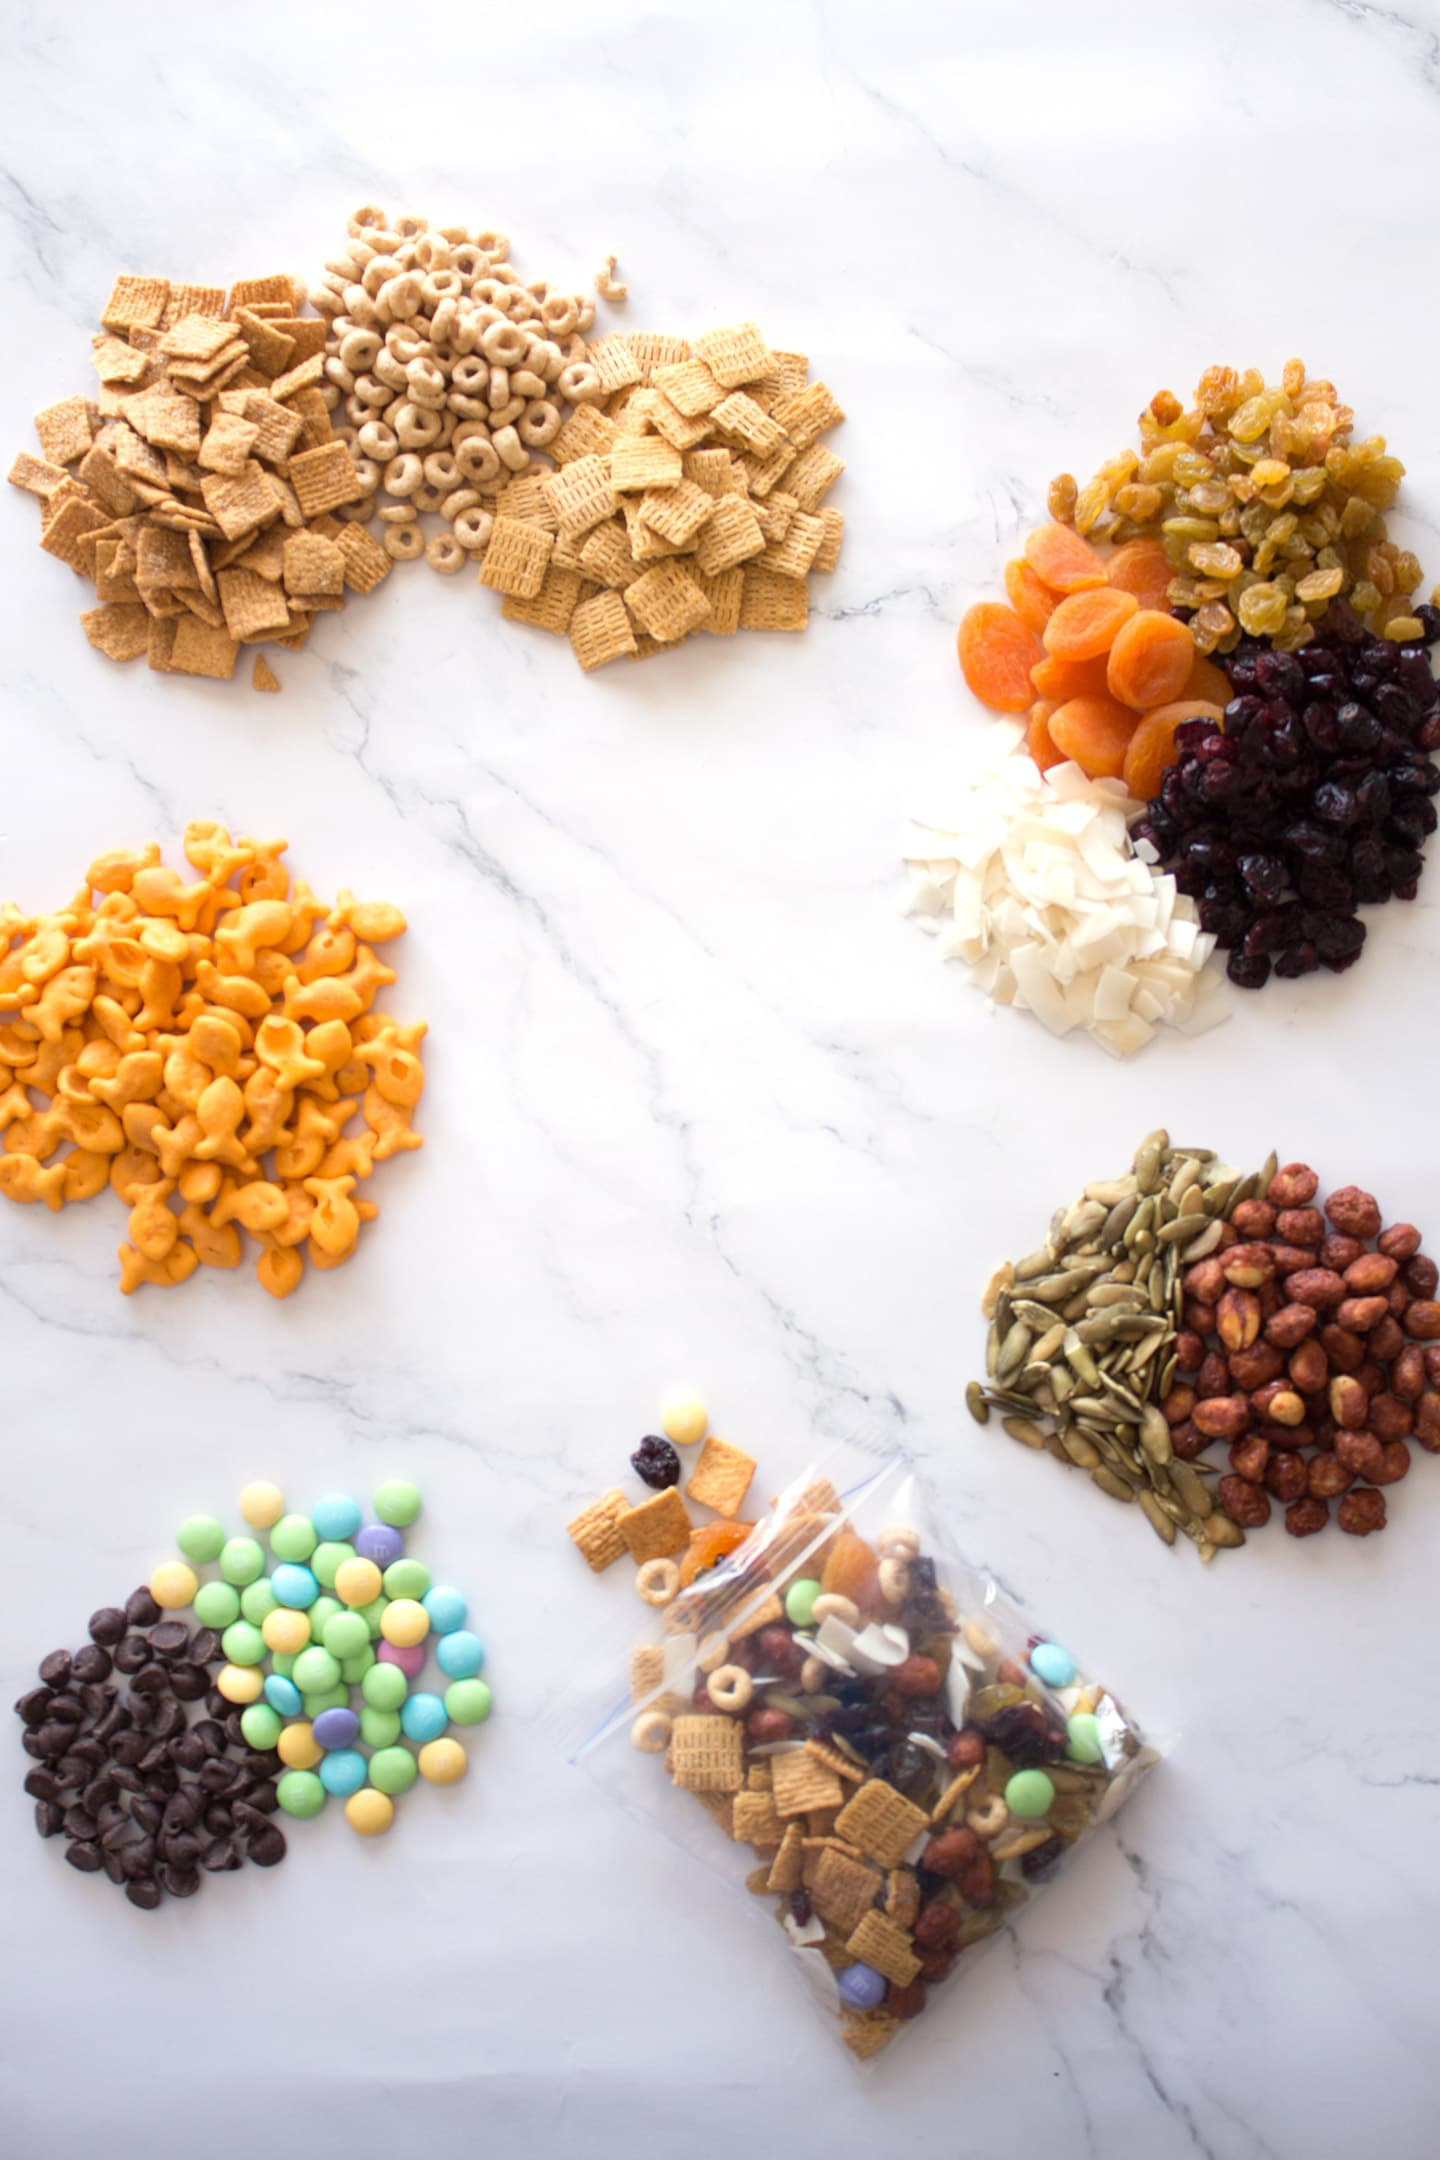 Different trail mix elements in piles on counter